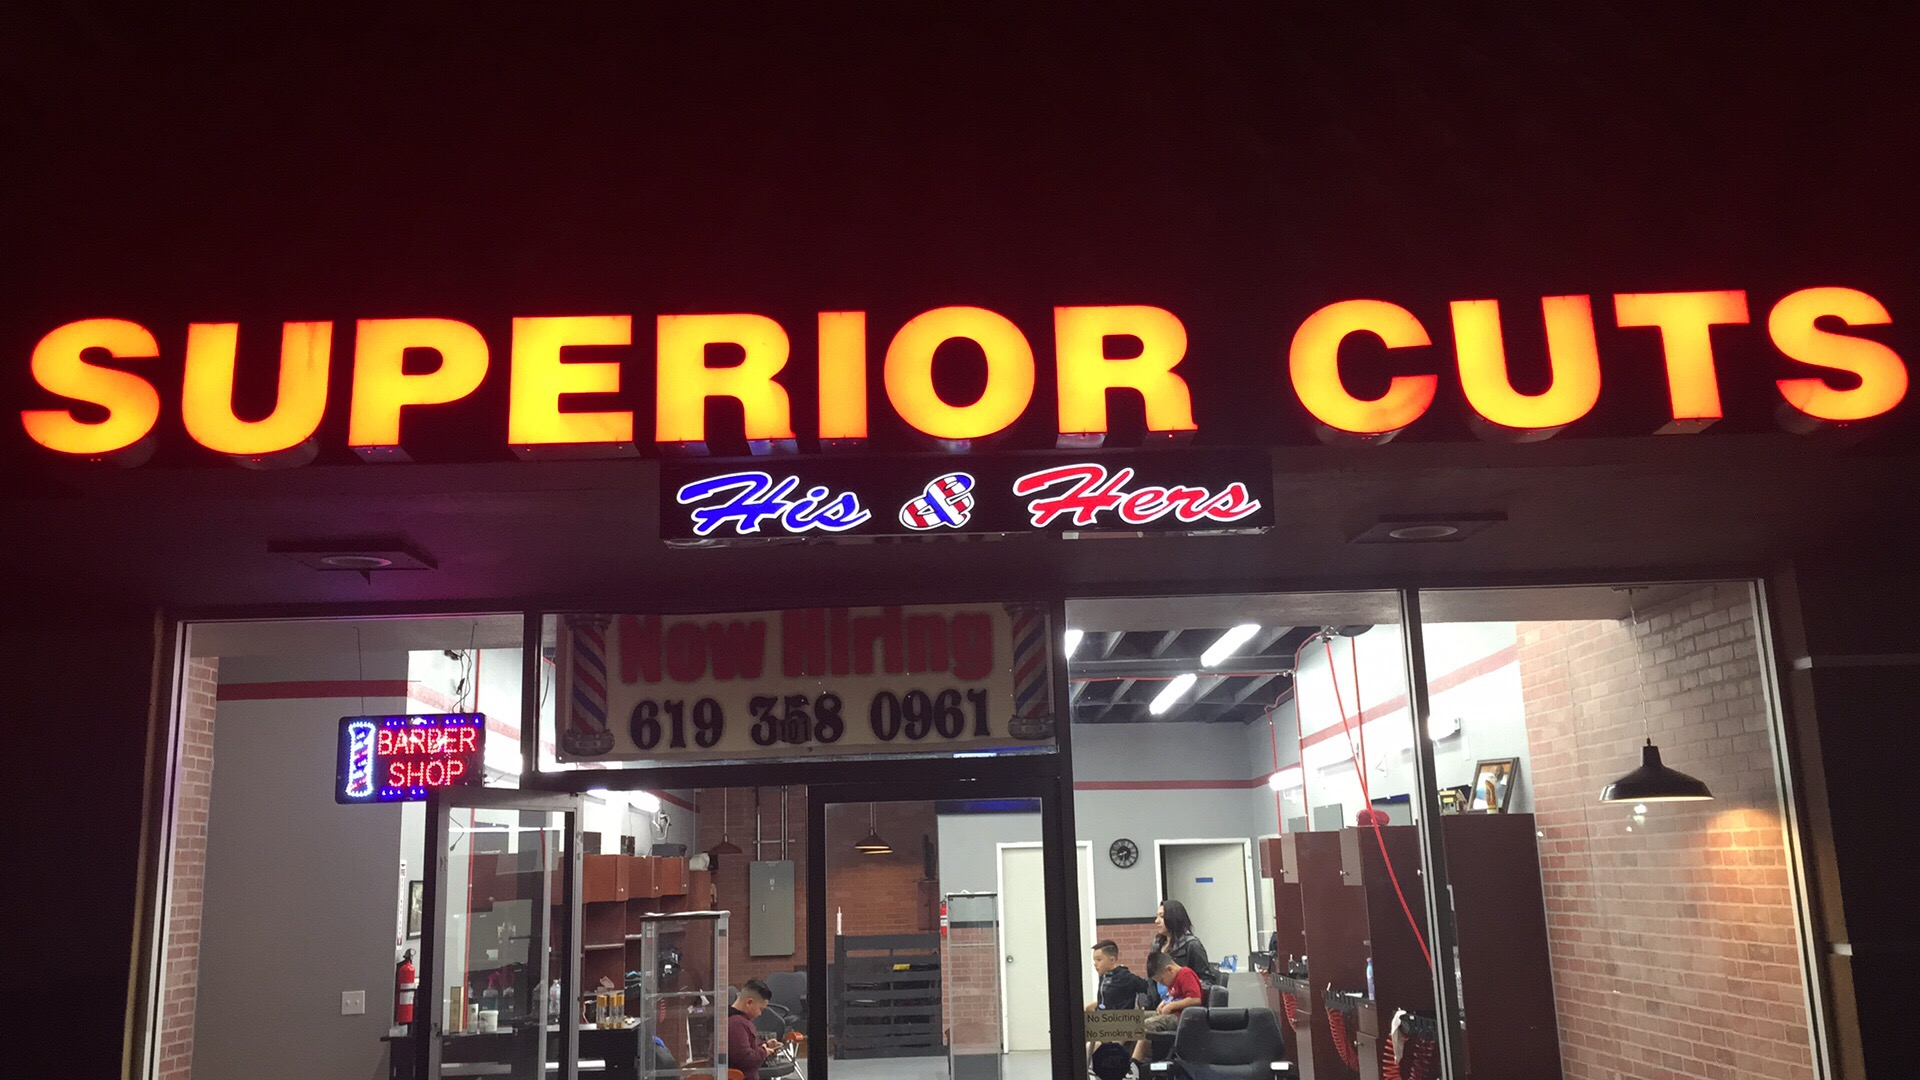 Superior Cuts His & Hers Grand Opening